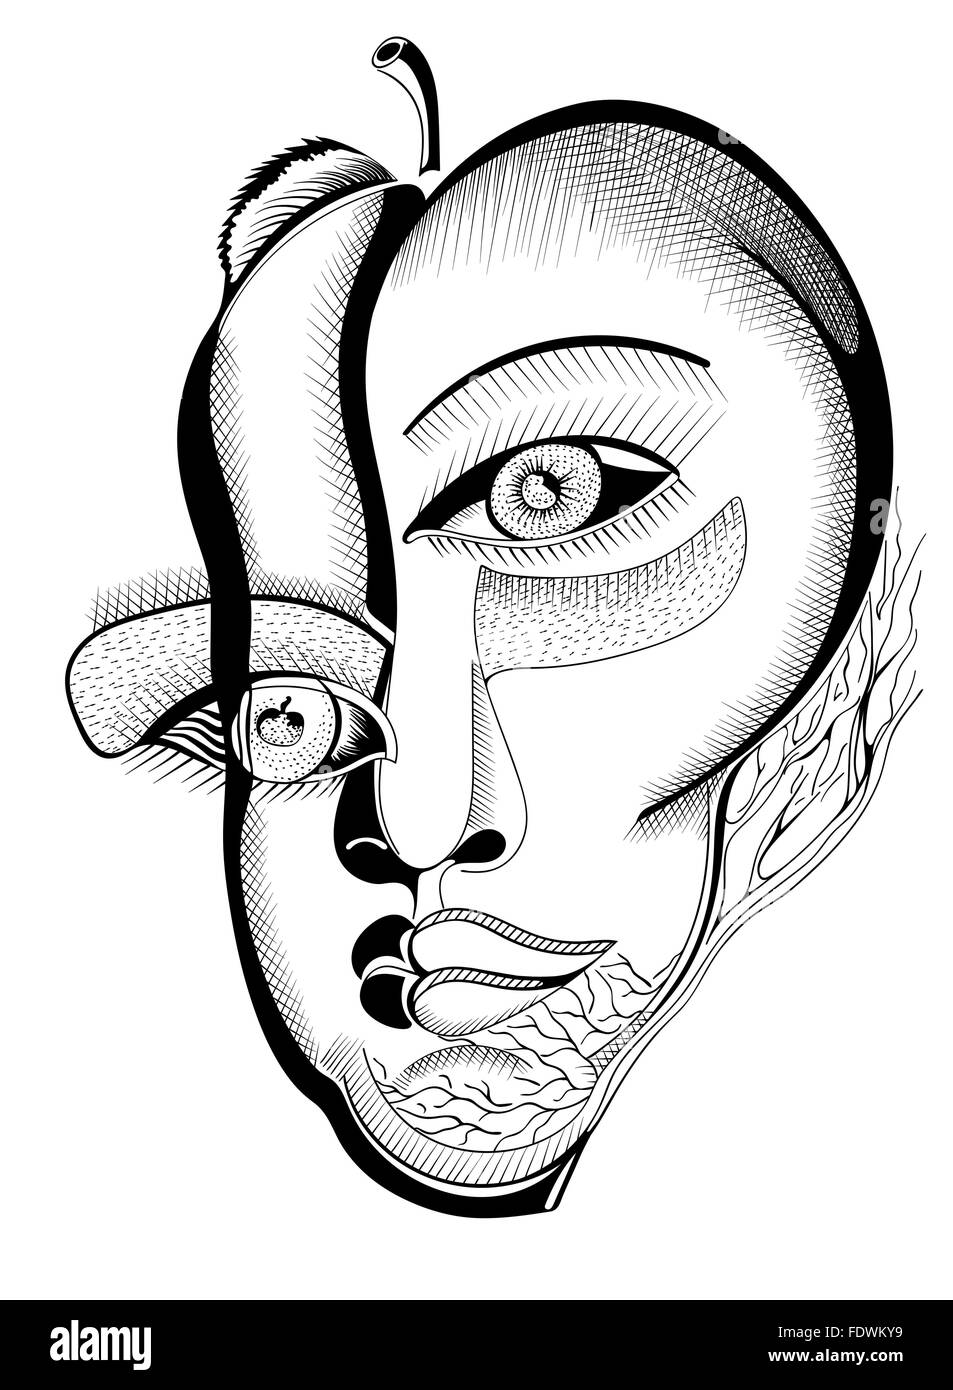 Surreal hand drawing faces abstract template with black outlines can use for posters cards stickers illustrations